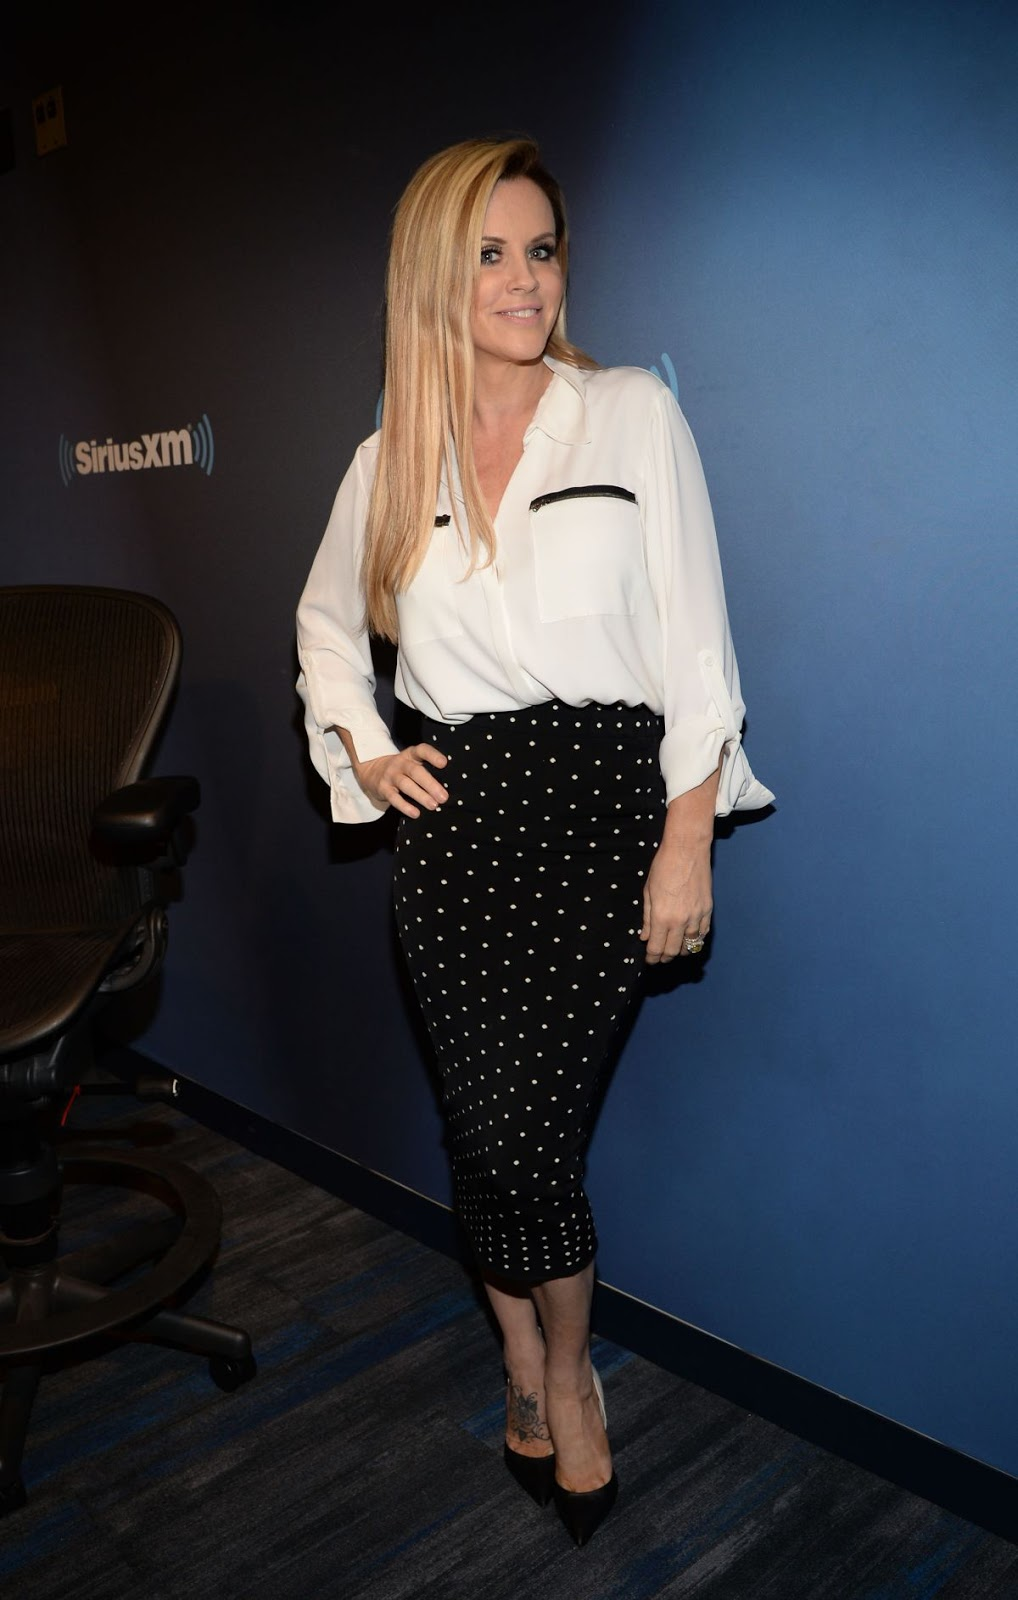 Ex-Playboy model Jenny Mccarthy at Siriusxm Studios NY City